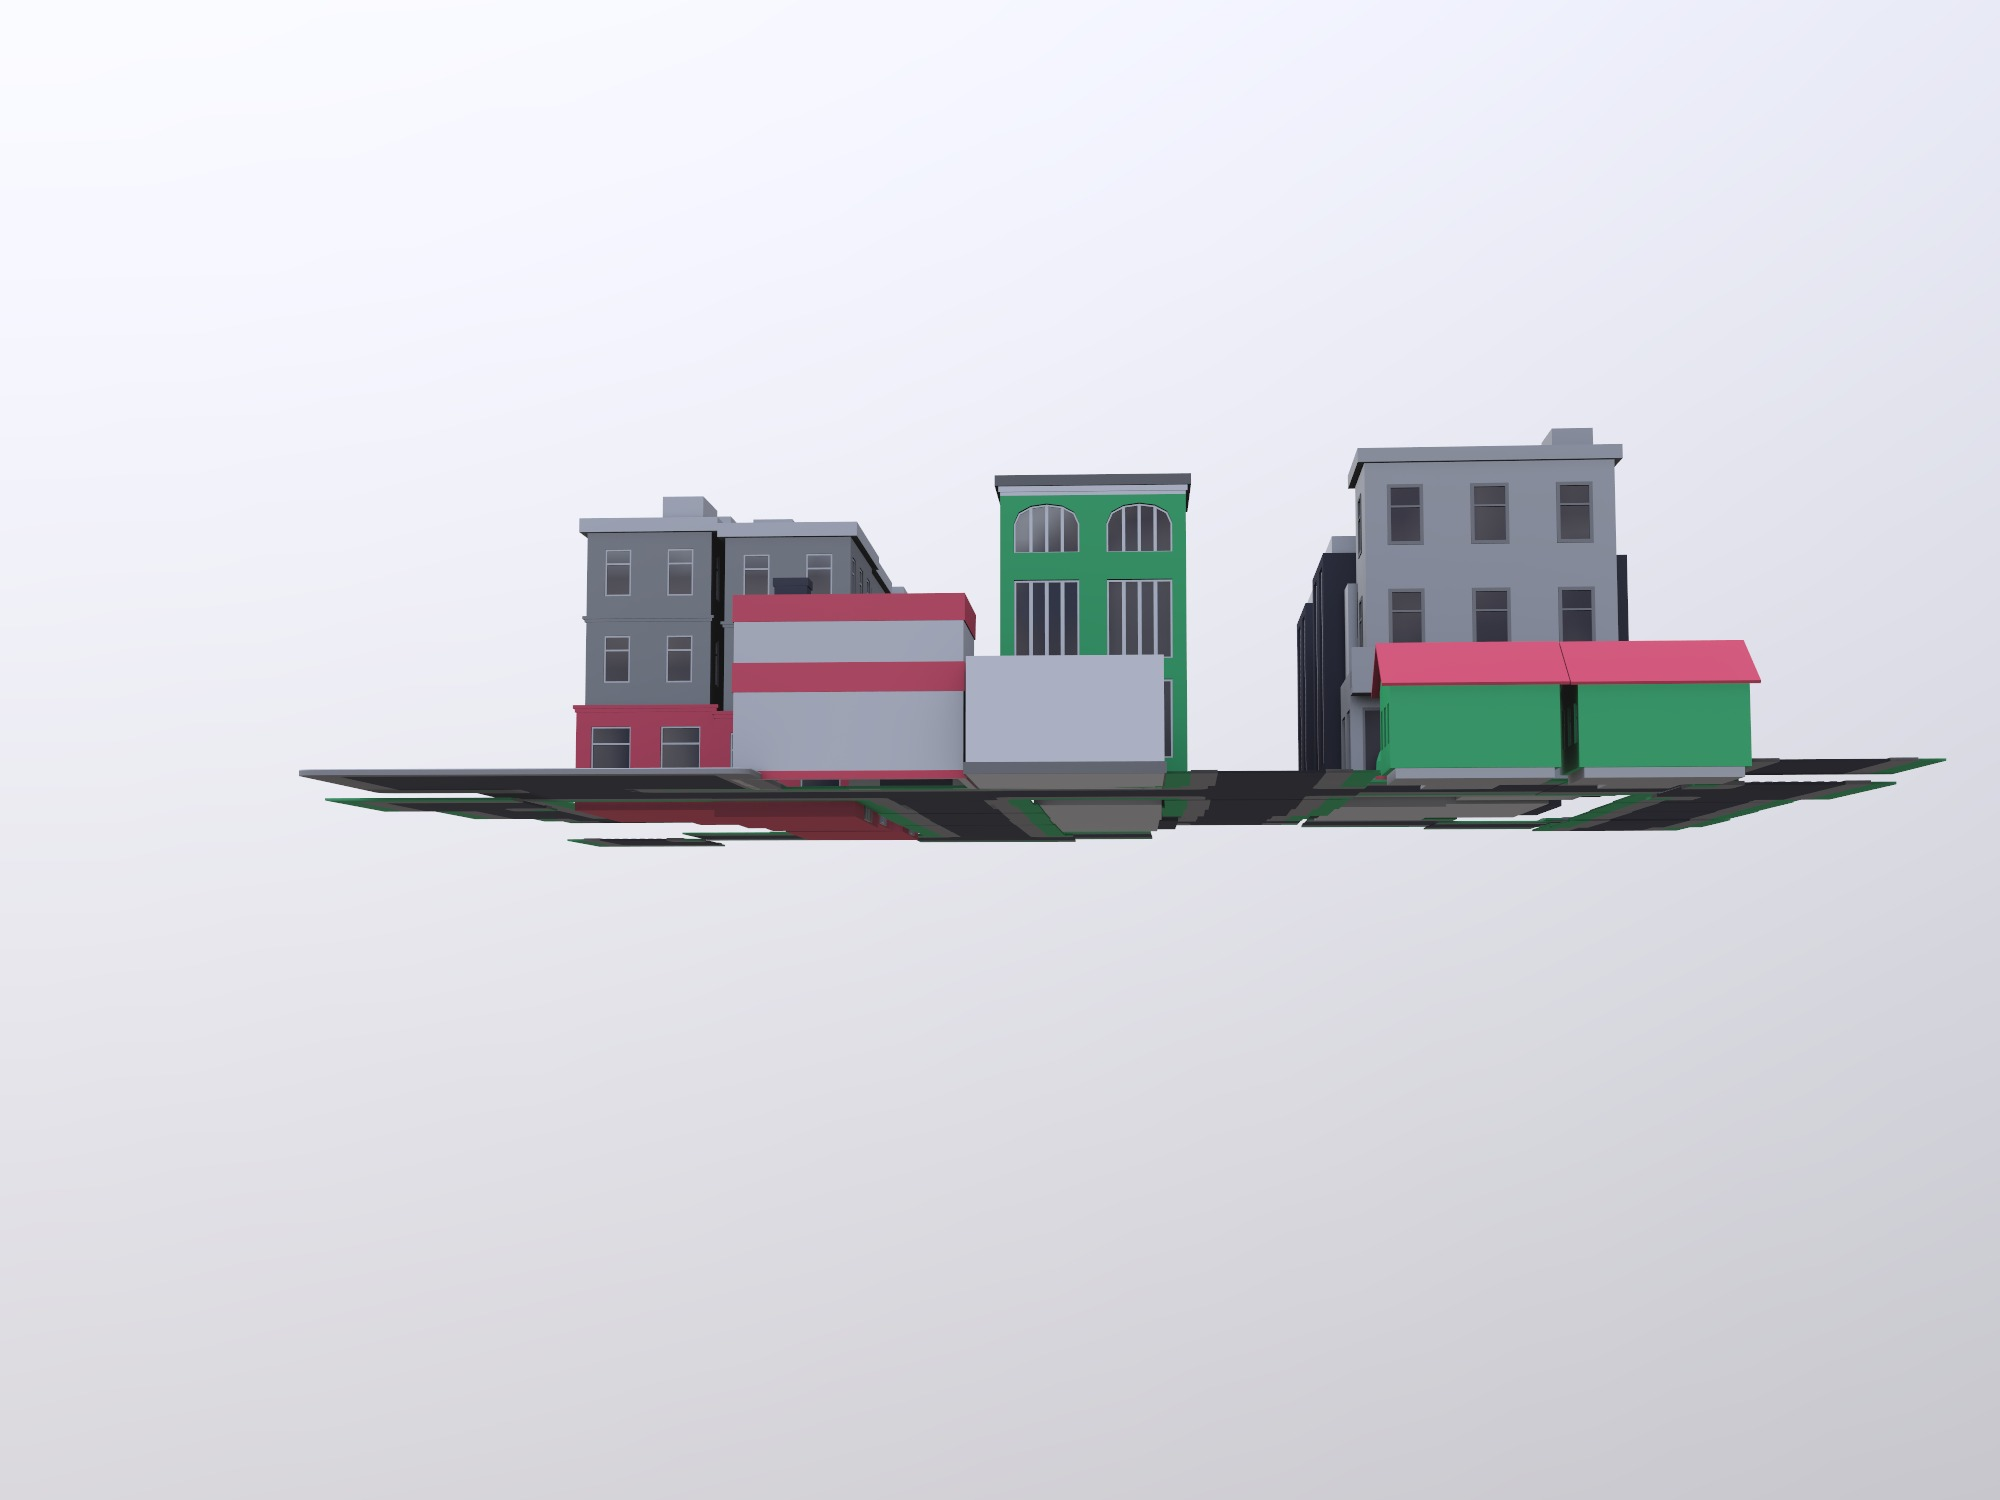 CITY (copy) - 3D design by Cheng How Koh on Jan 18, 2019